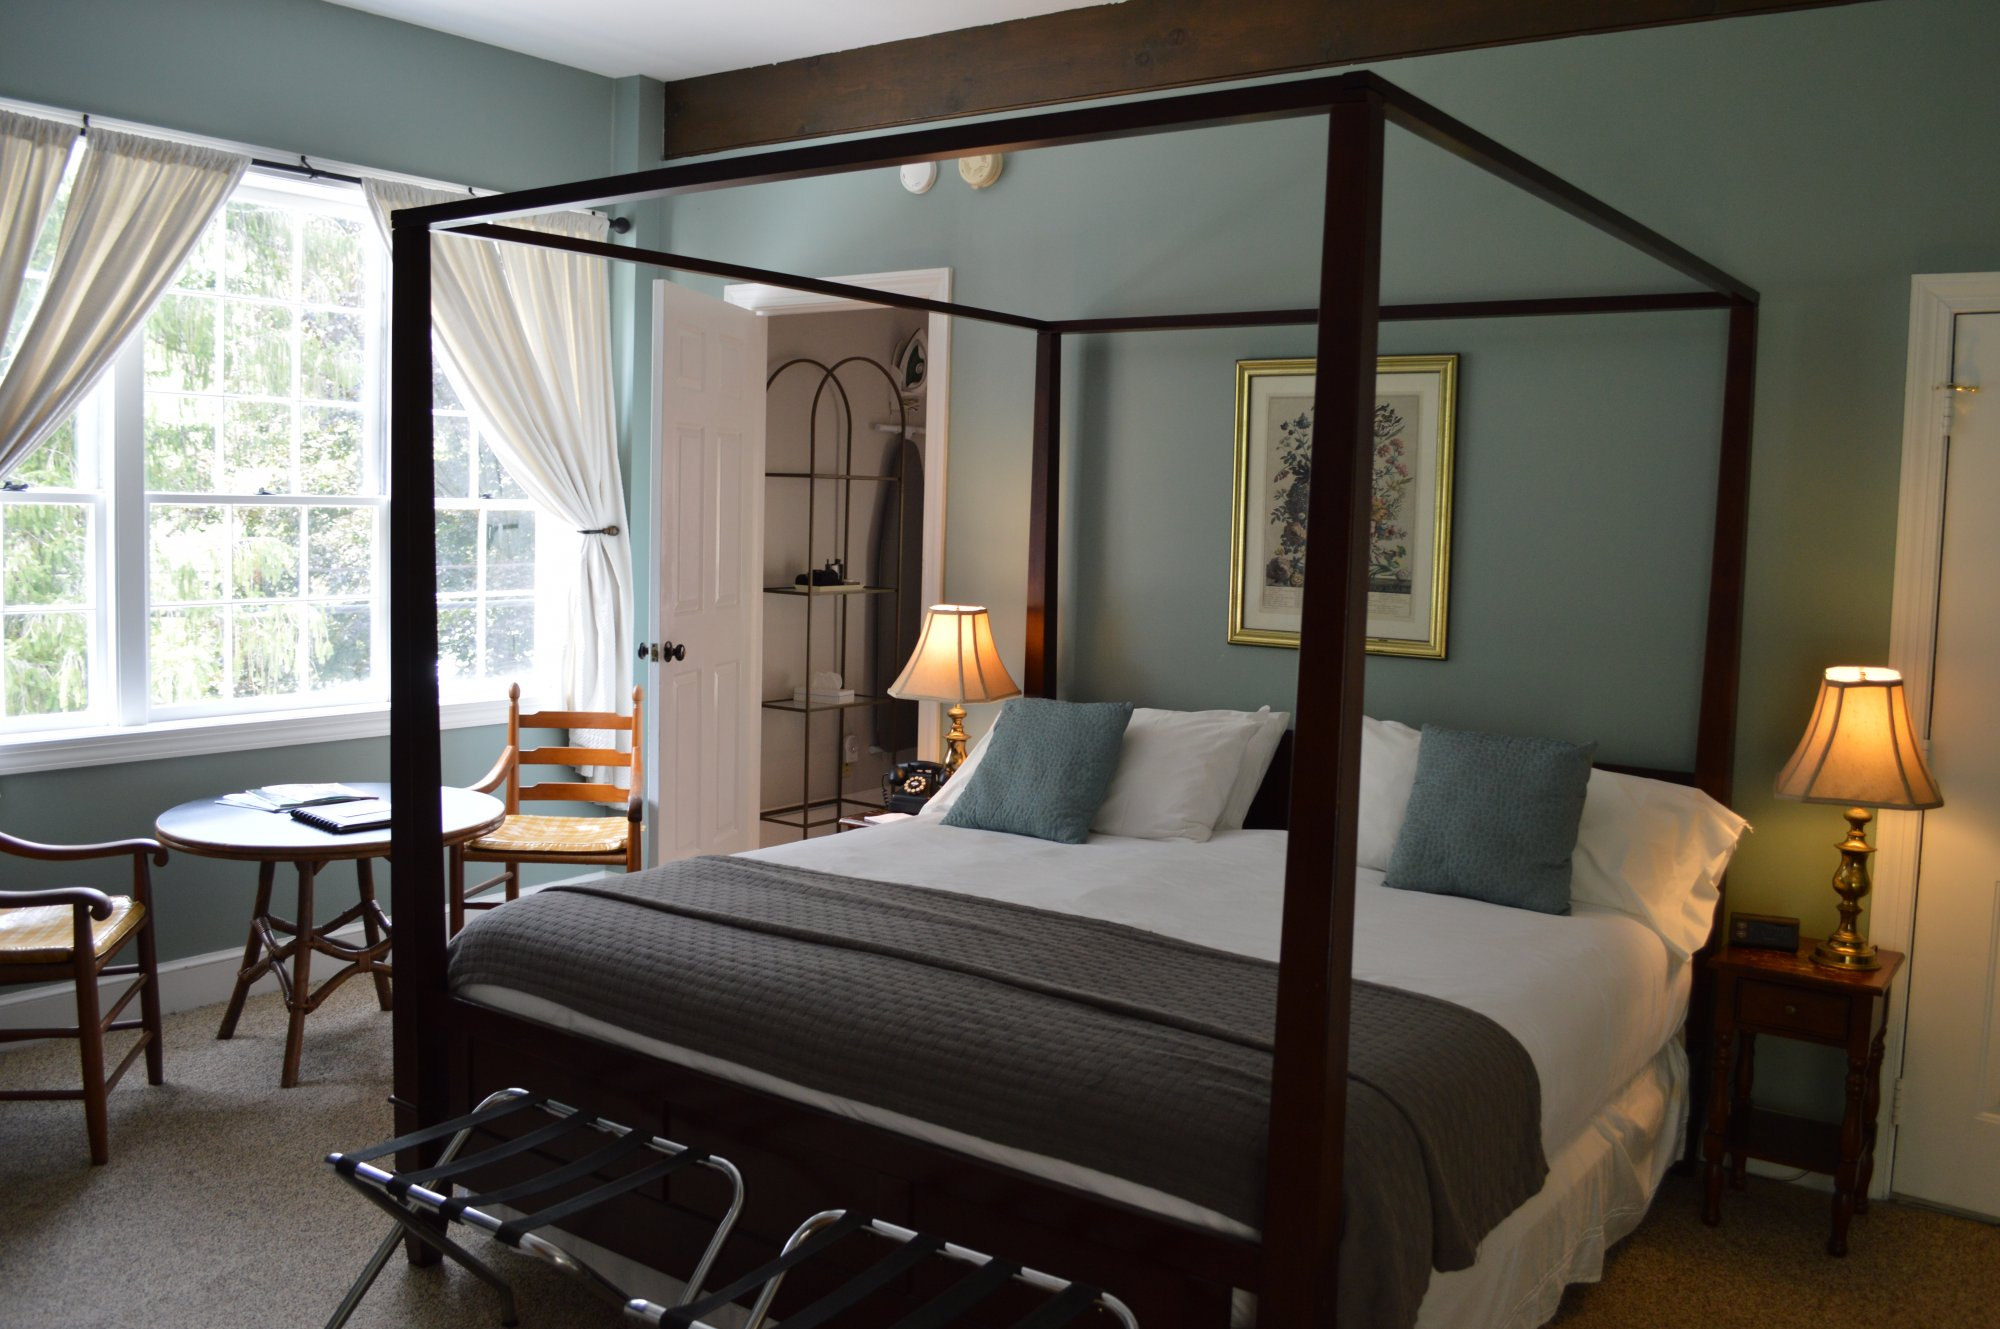 Bromley Room at the Inn at Gristmill Square in Warm Springs, Virginia